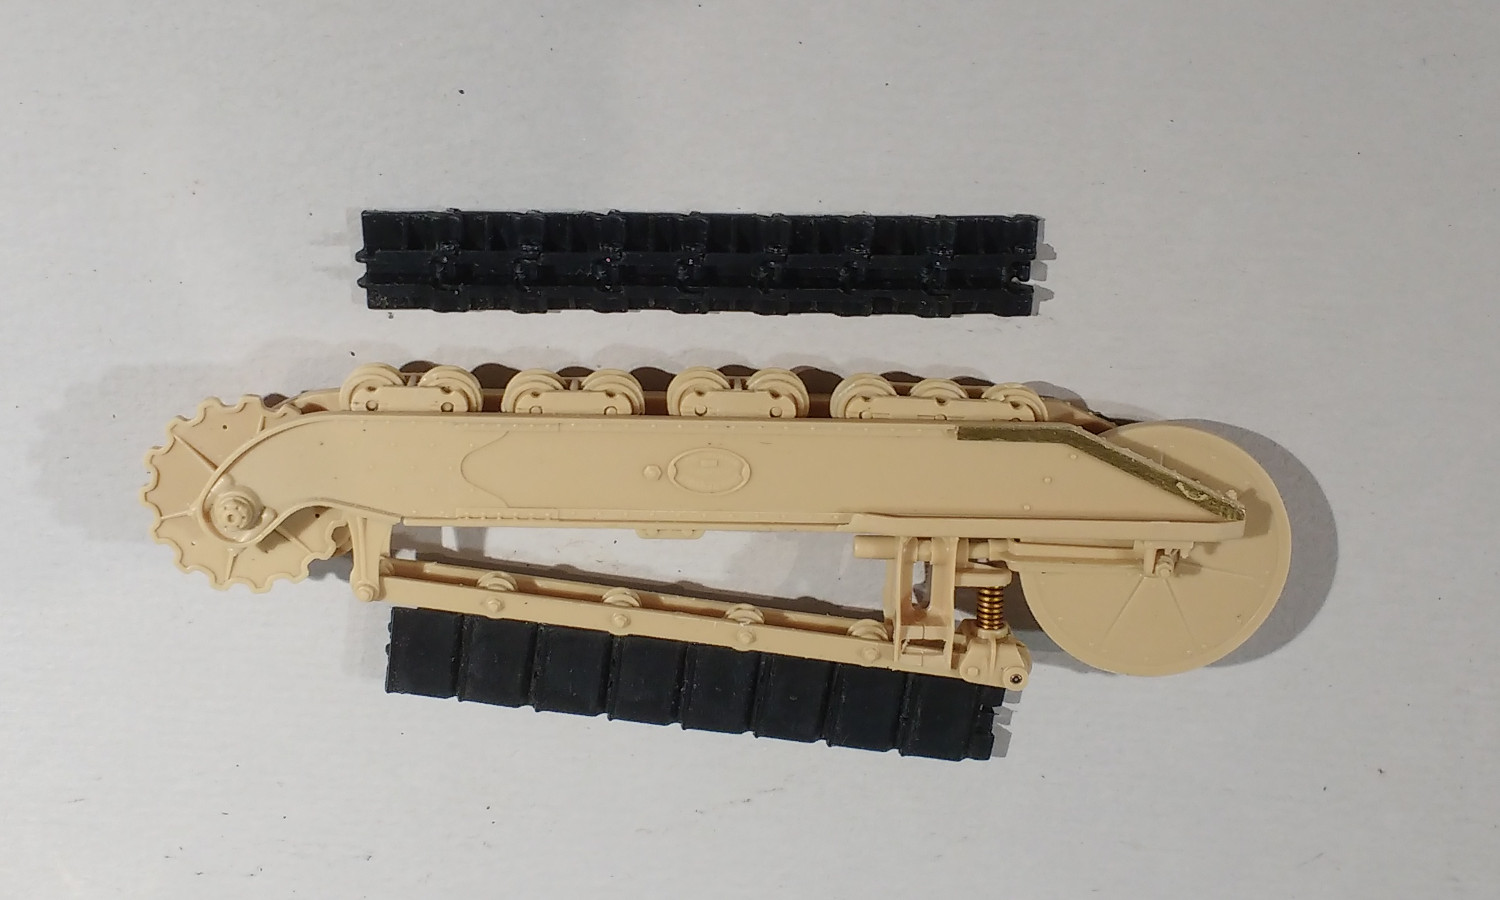 Quelques FT (Meng 1/35) Td7JIb-F31-29